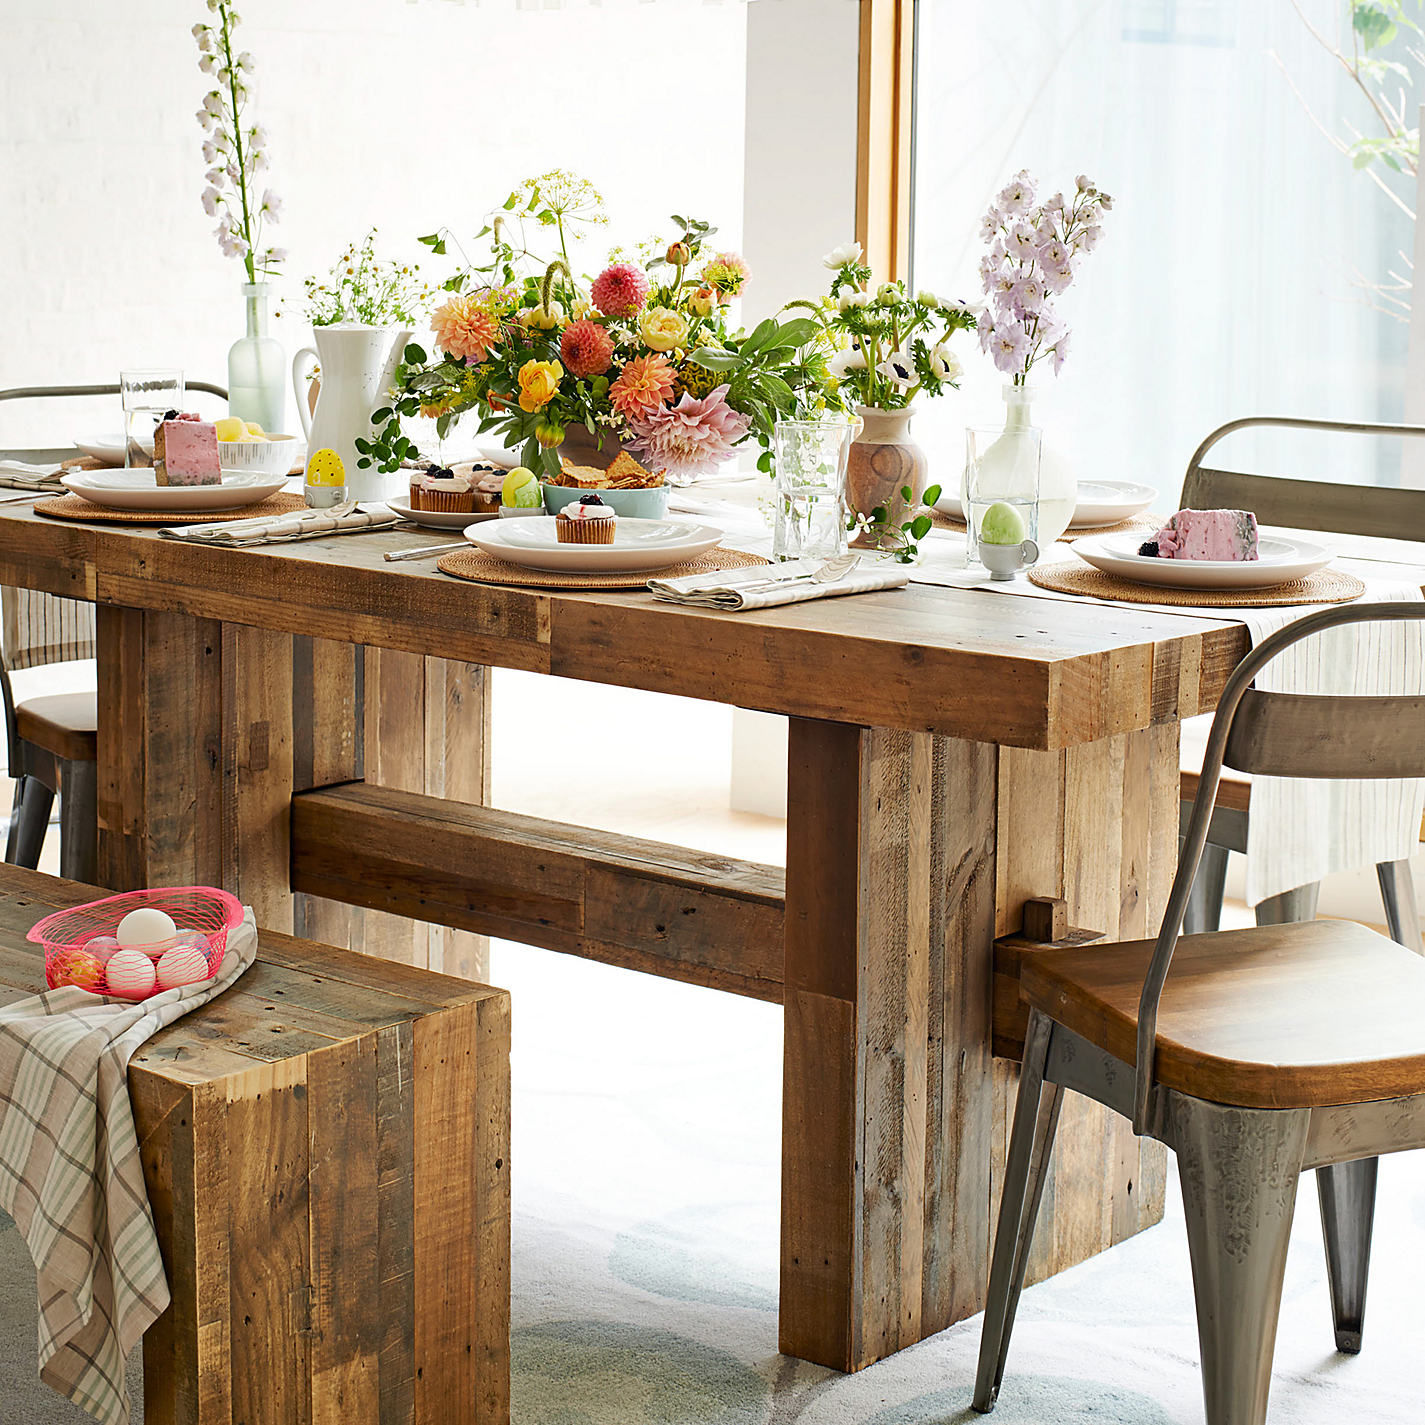 West Elm Dining Room Table West Elm Dining Room Table West Elm